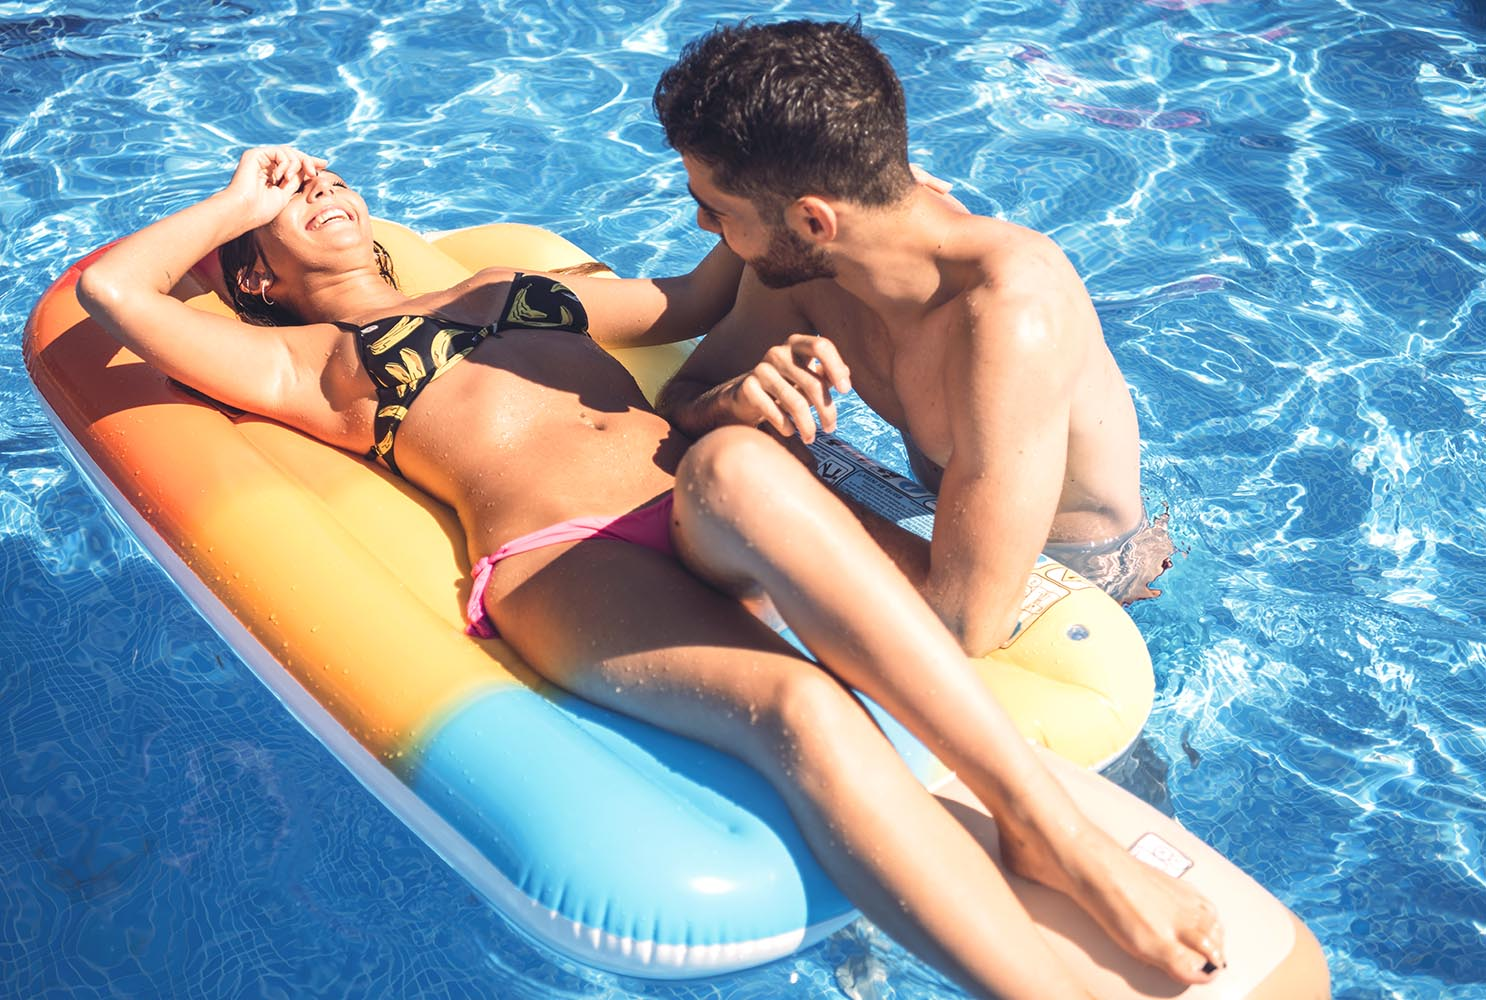 Cheerful girl and man in pool